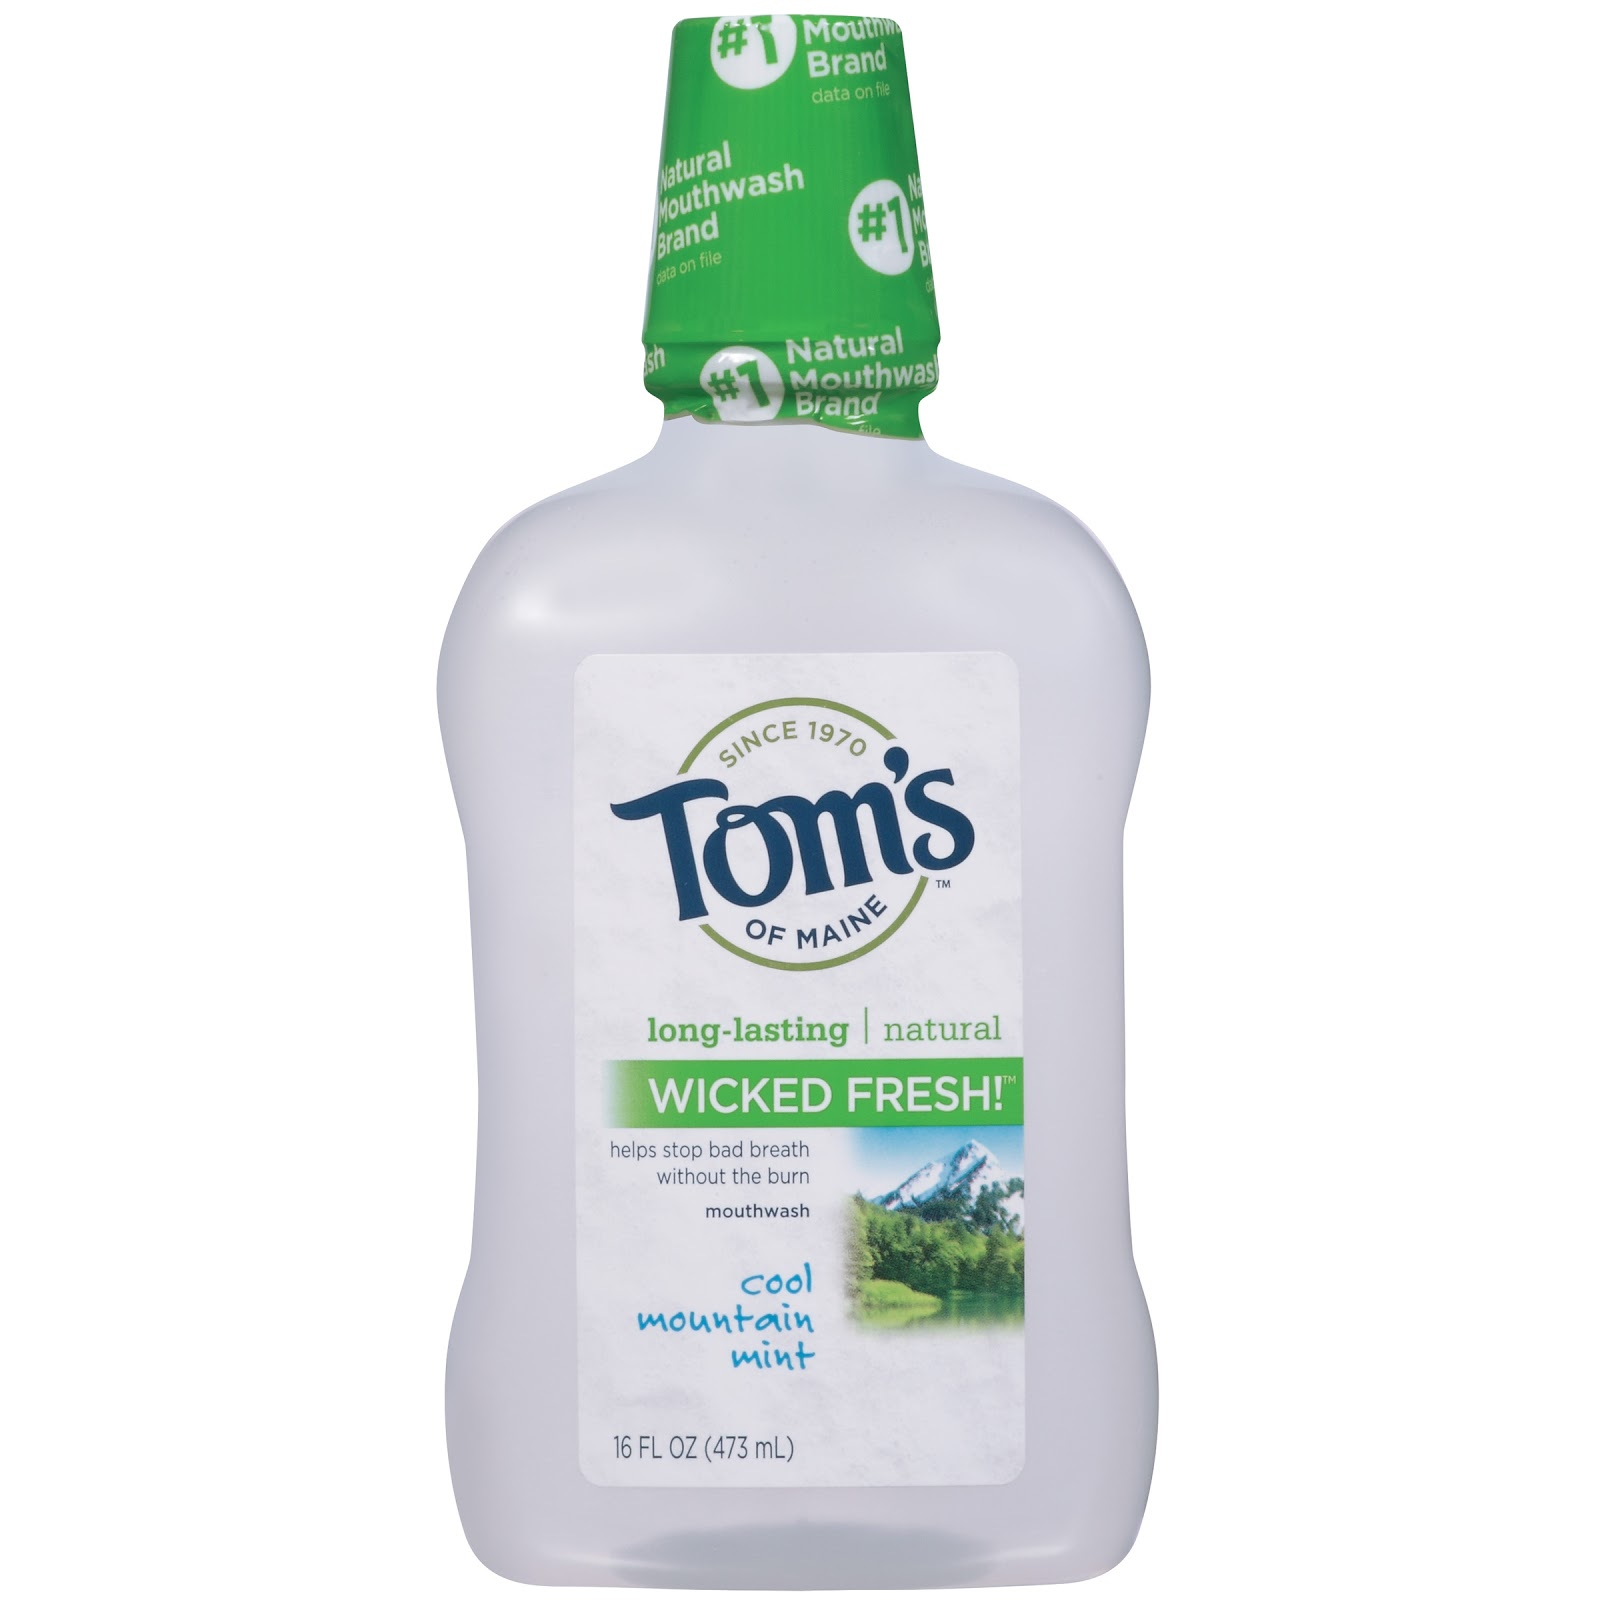 Tom's of Maine has been around since 1970 and prides itself on being the #1 natural mouthwash brand.